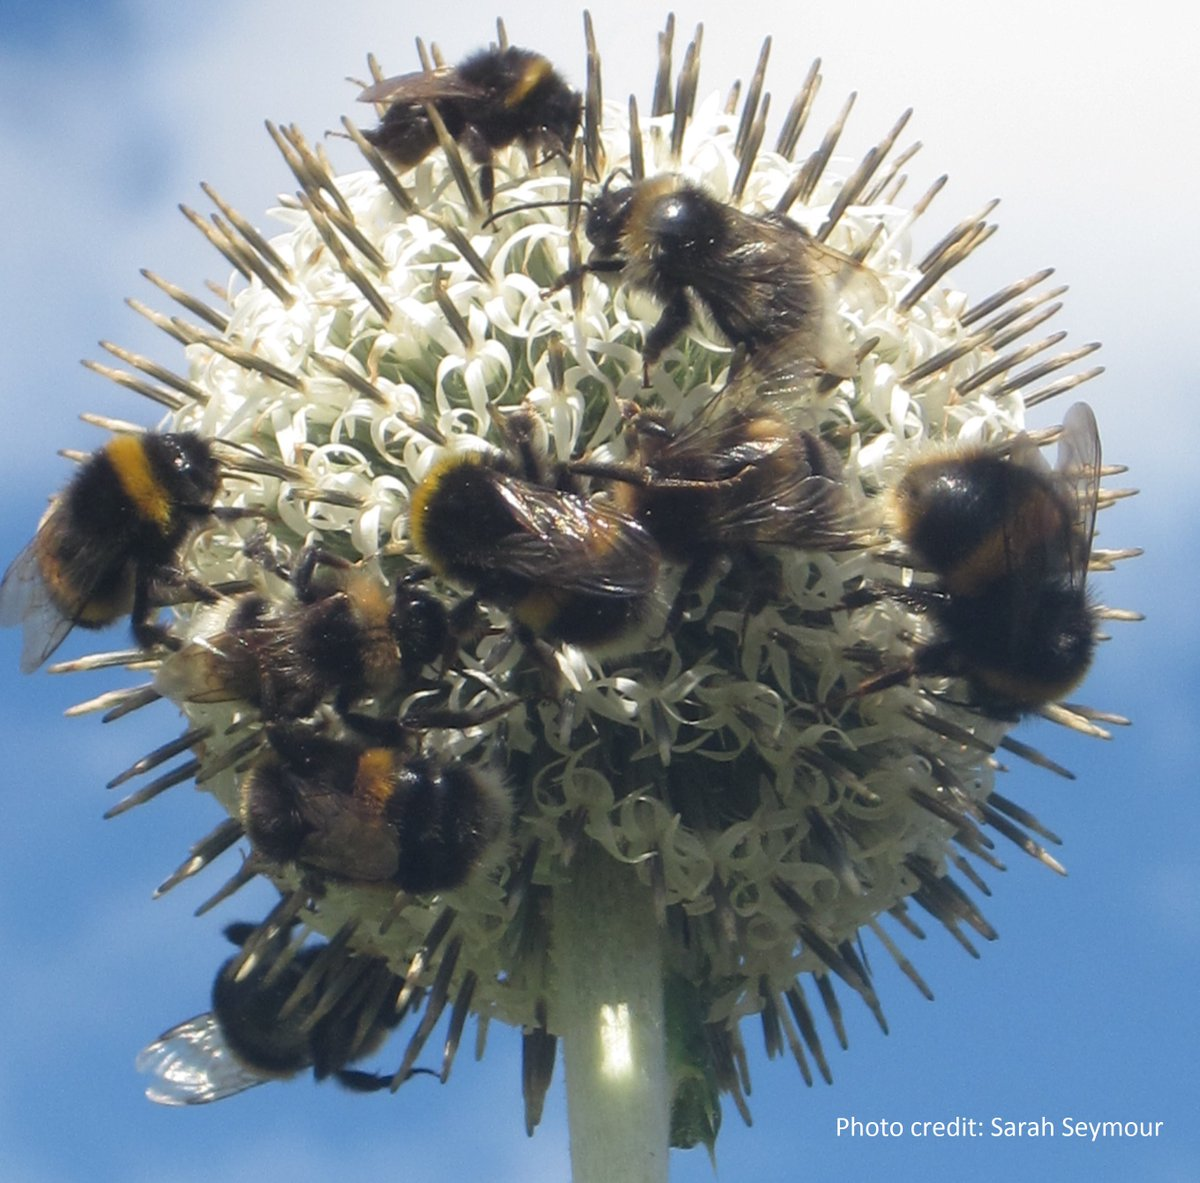 Would you like to join our growing team? We have a fantastic vacancy for a full-time, Digital & Operations Officer in our Stirling office. Deadline is Sunday 17 March. You can read more at: http://ow.ly/FzJV30o3p14 #bumblebees #conservation